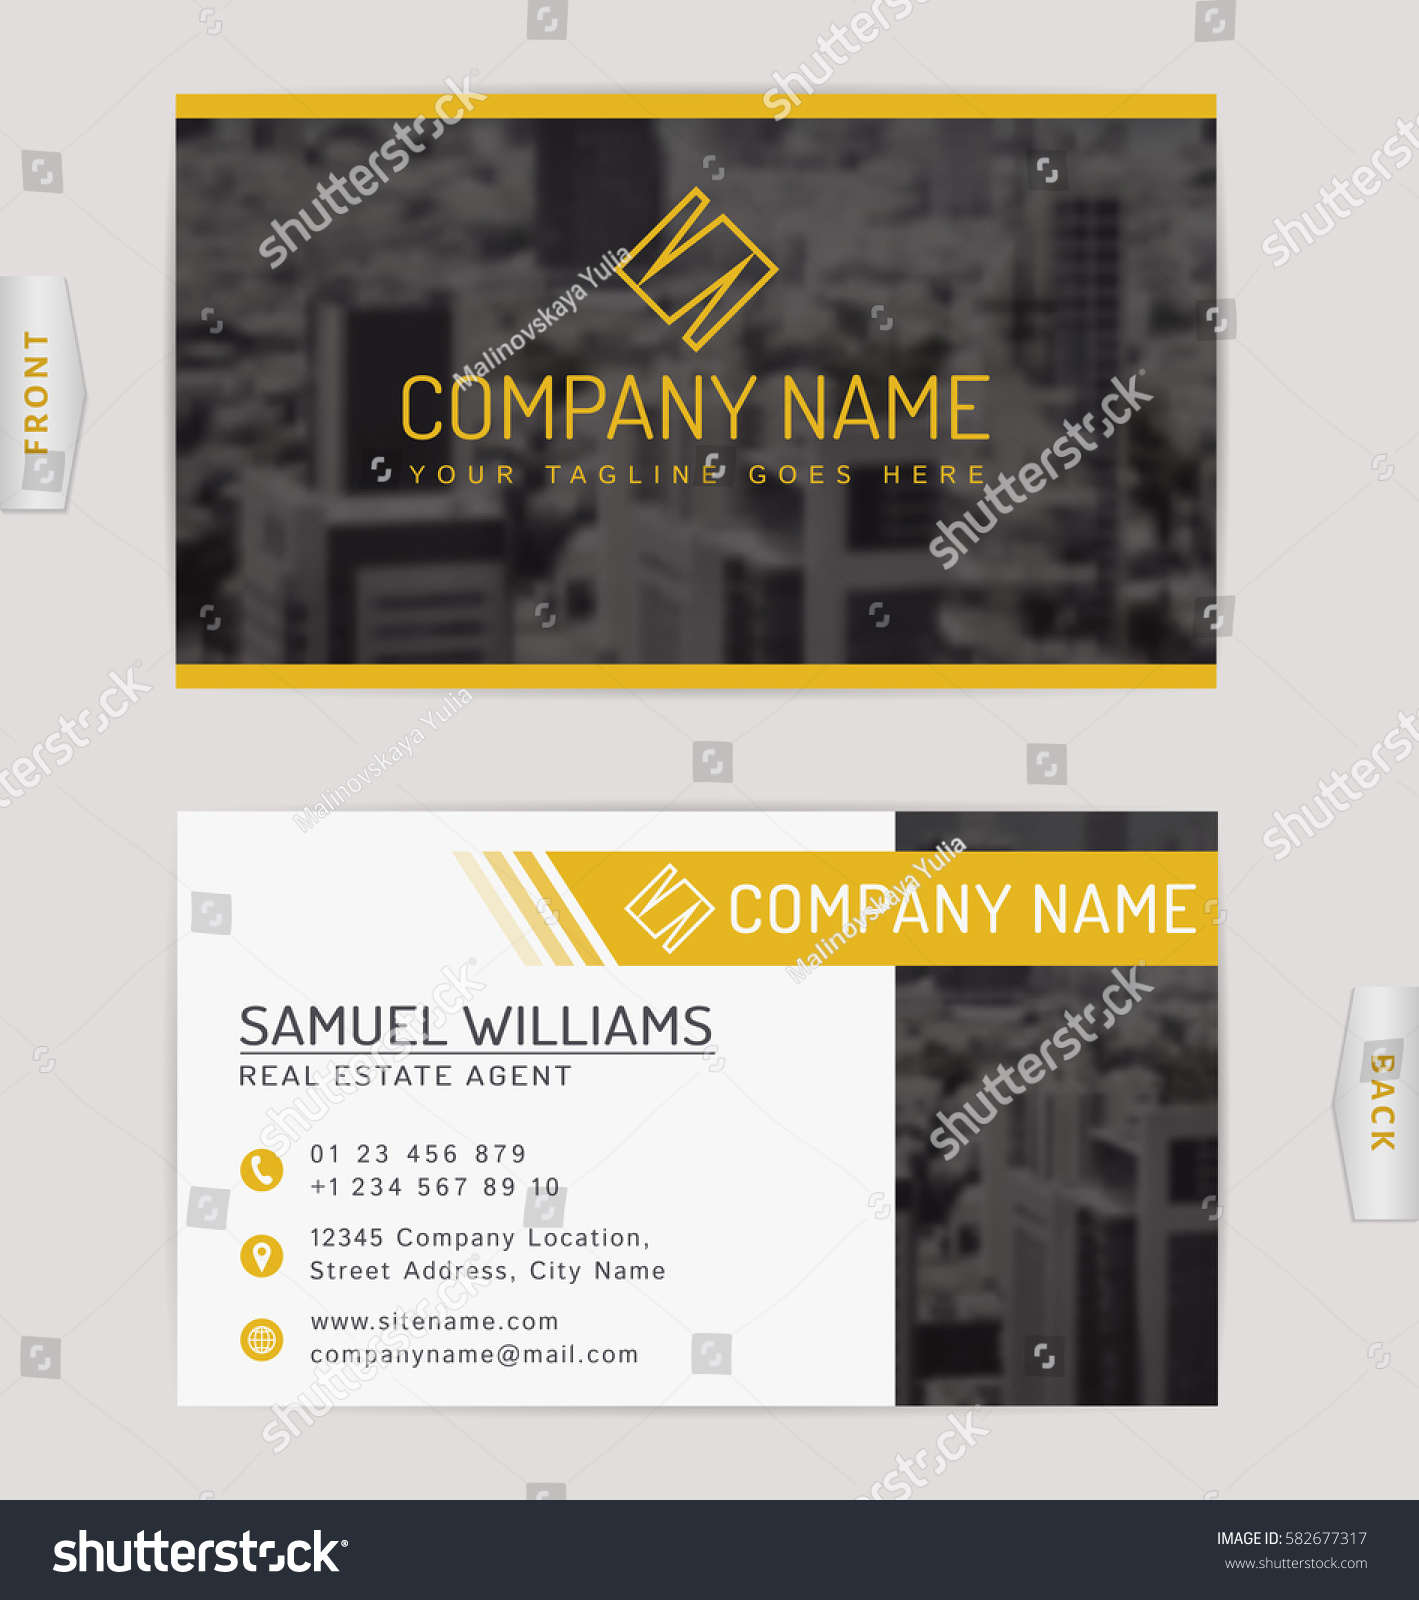 Business card real estate company vector stock vector 582677317 business card for real estate company vector template with blurred cityscape background magicingreecefo Image collections